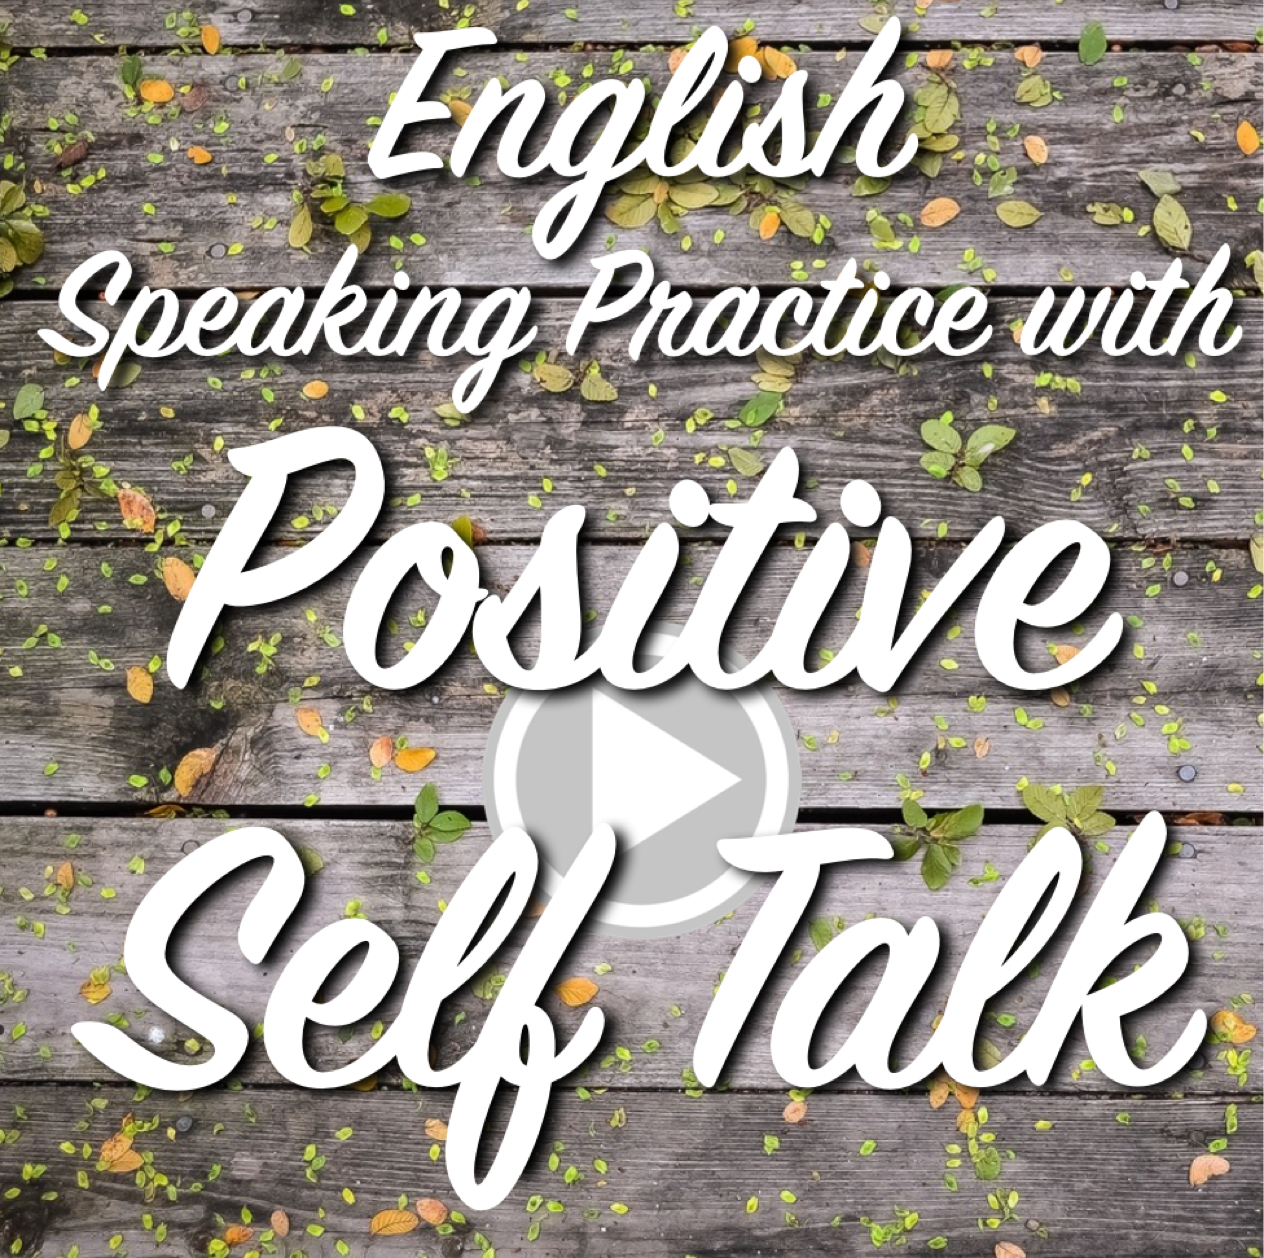 English Lessons to Practice Speaking English